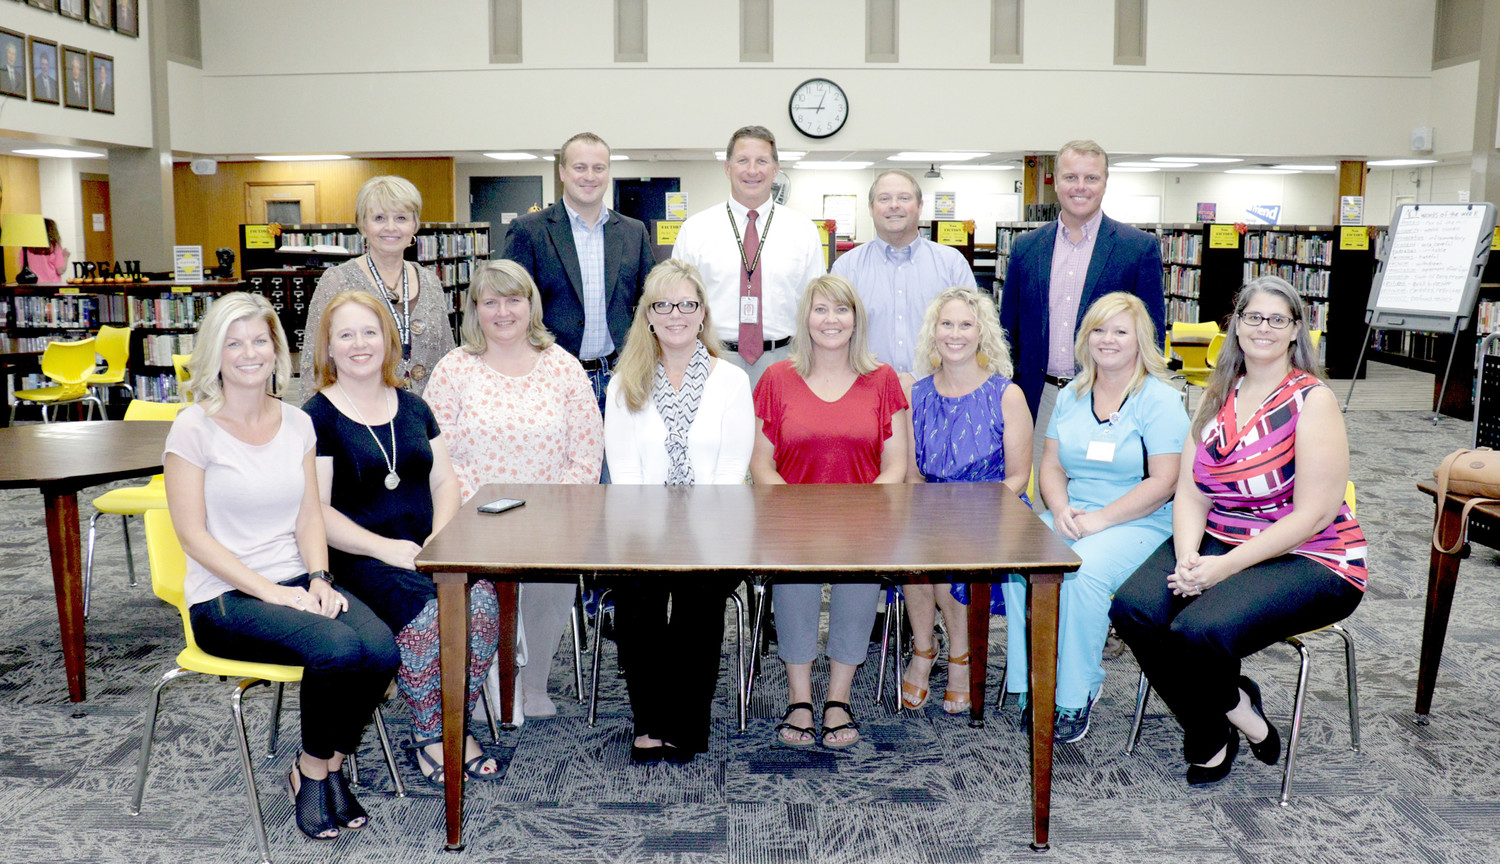 THE PRINCIPAL'S ADVISORY COUNCIL at Bradley Central High School recently had its first meeting for the year. It is composed of parents of students in all four grades, and meets twice a semester with the BCHS principal.  In the front row, from left, are Stephanie Hughes, Michelle Augustine, Christy Critchfield, Michelle Williams, Julie Walker, Tracey Walker, Jennifer Dobbs and Danielle York. In the back row are BCHS parent coordinator Karen Winters, James Sears, BCHS Principal Todd Shoemaker, Andy Williams and Jason Robinson. Not pictured are Patrick Wooden, Shelia Bennett and Amy Fletcher.